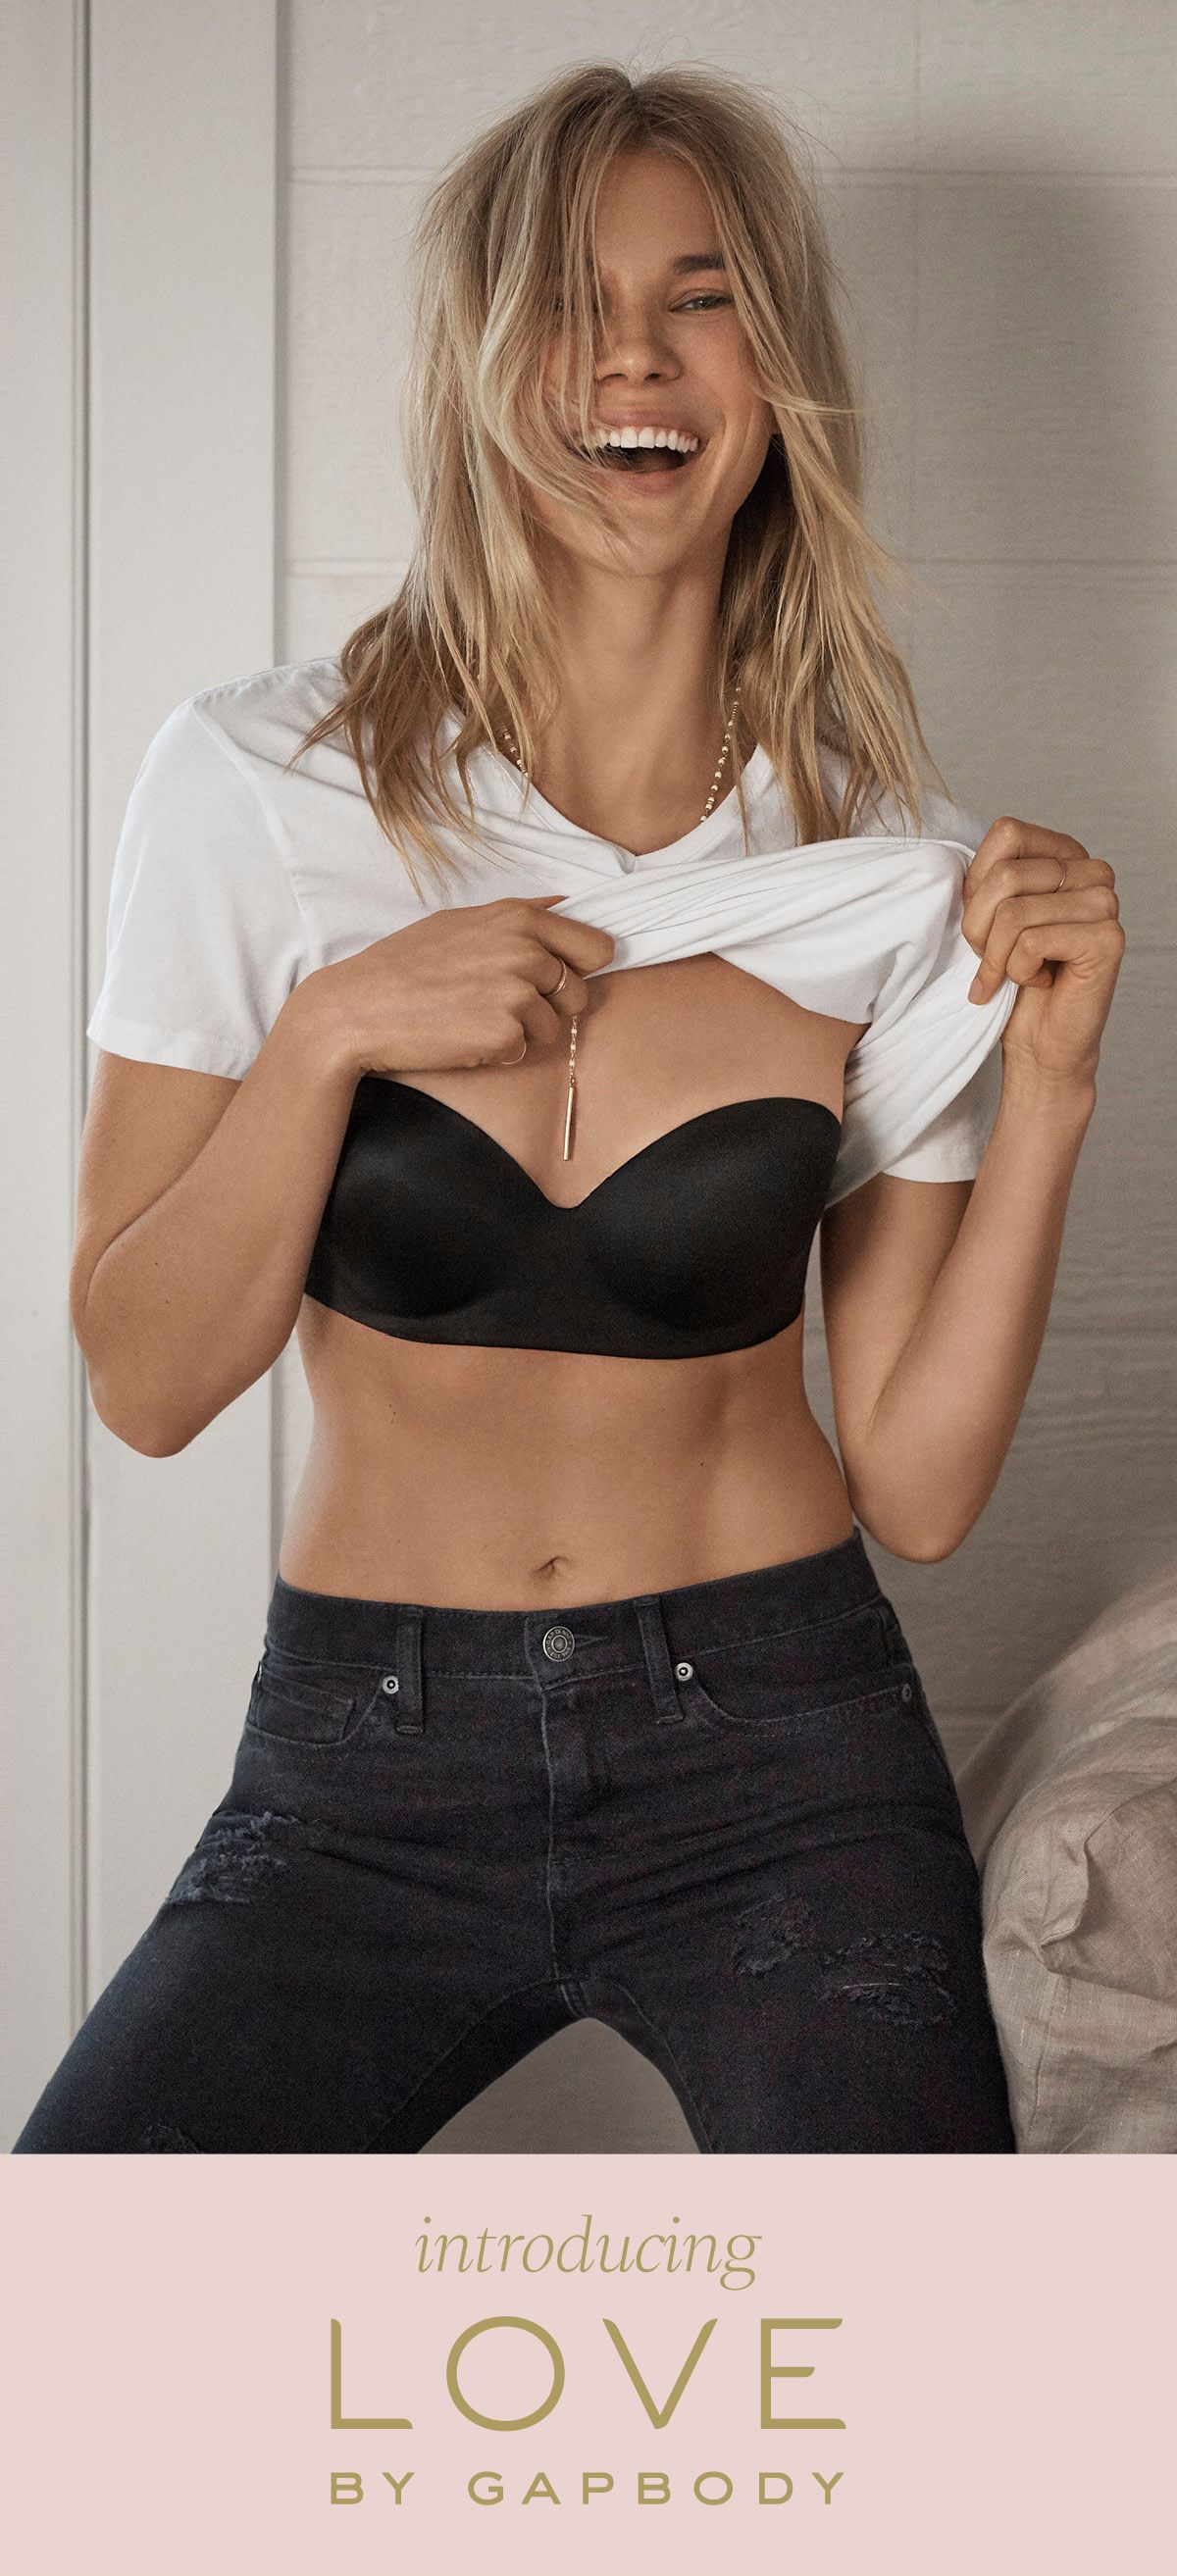 ca8c29b483be3 Get into the very versatile Everyday Smooth Strapless Multiway bra. All the  ways you can wear it  classic